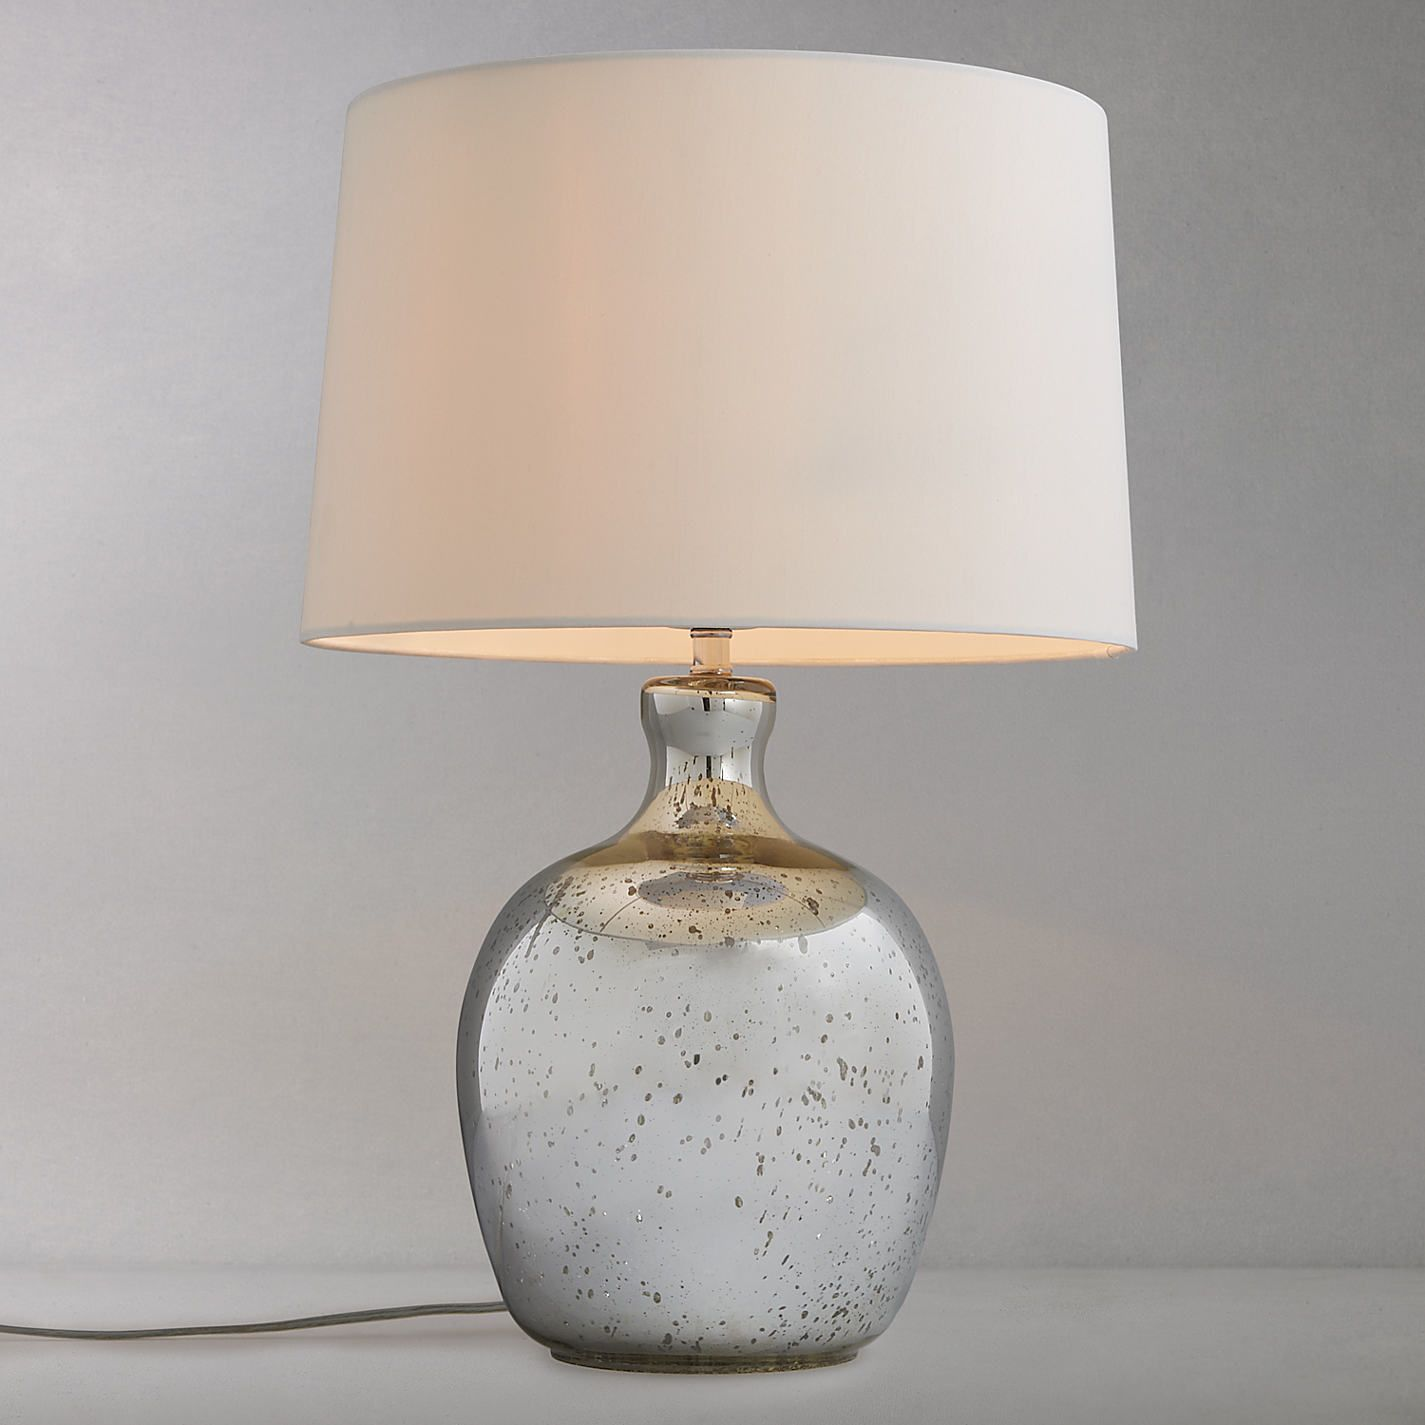 Buy john lewis breton table lamp online at johnlewis store buy john lewis breton table lamp online at johnlewis store john lewis pinterest john lewis lounge ideas and bedrooms geotapseo Image collections